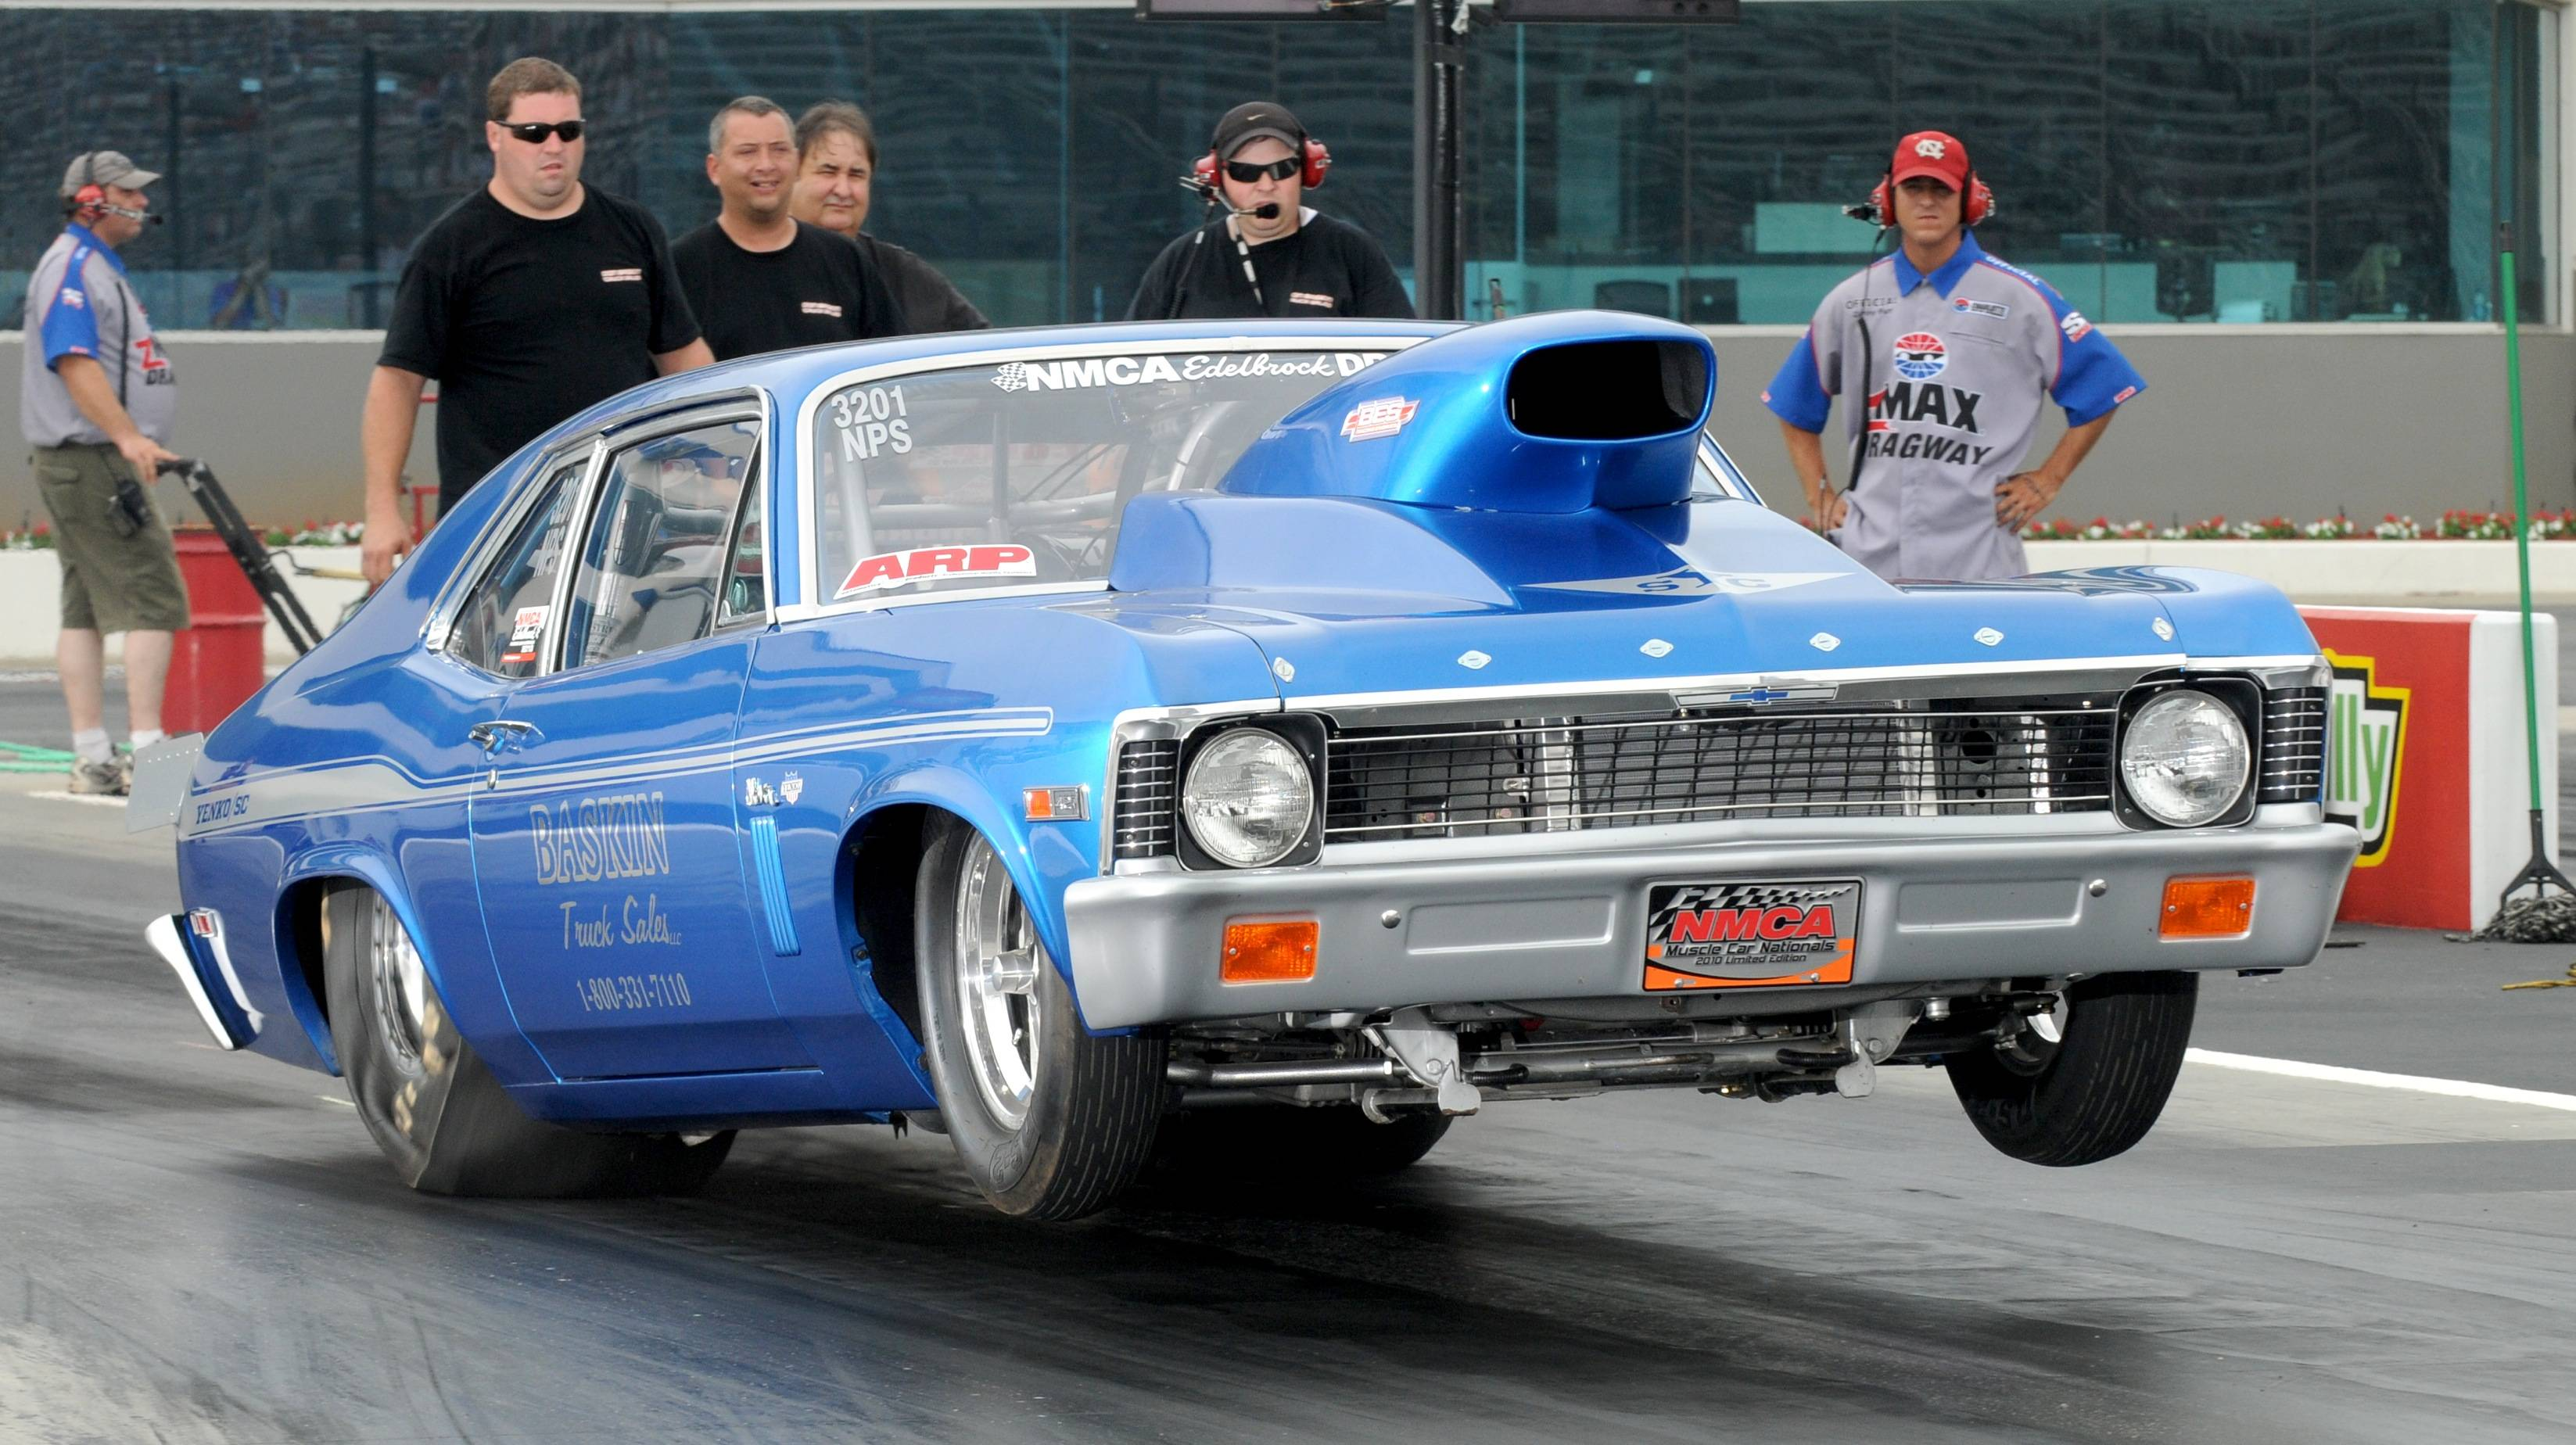 Chevrolet nova drag racing wheelie race track hot rod muscle cars ...